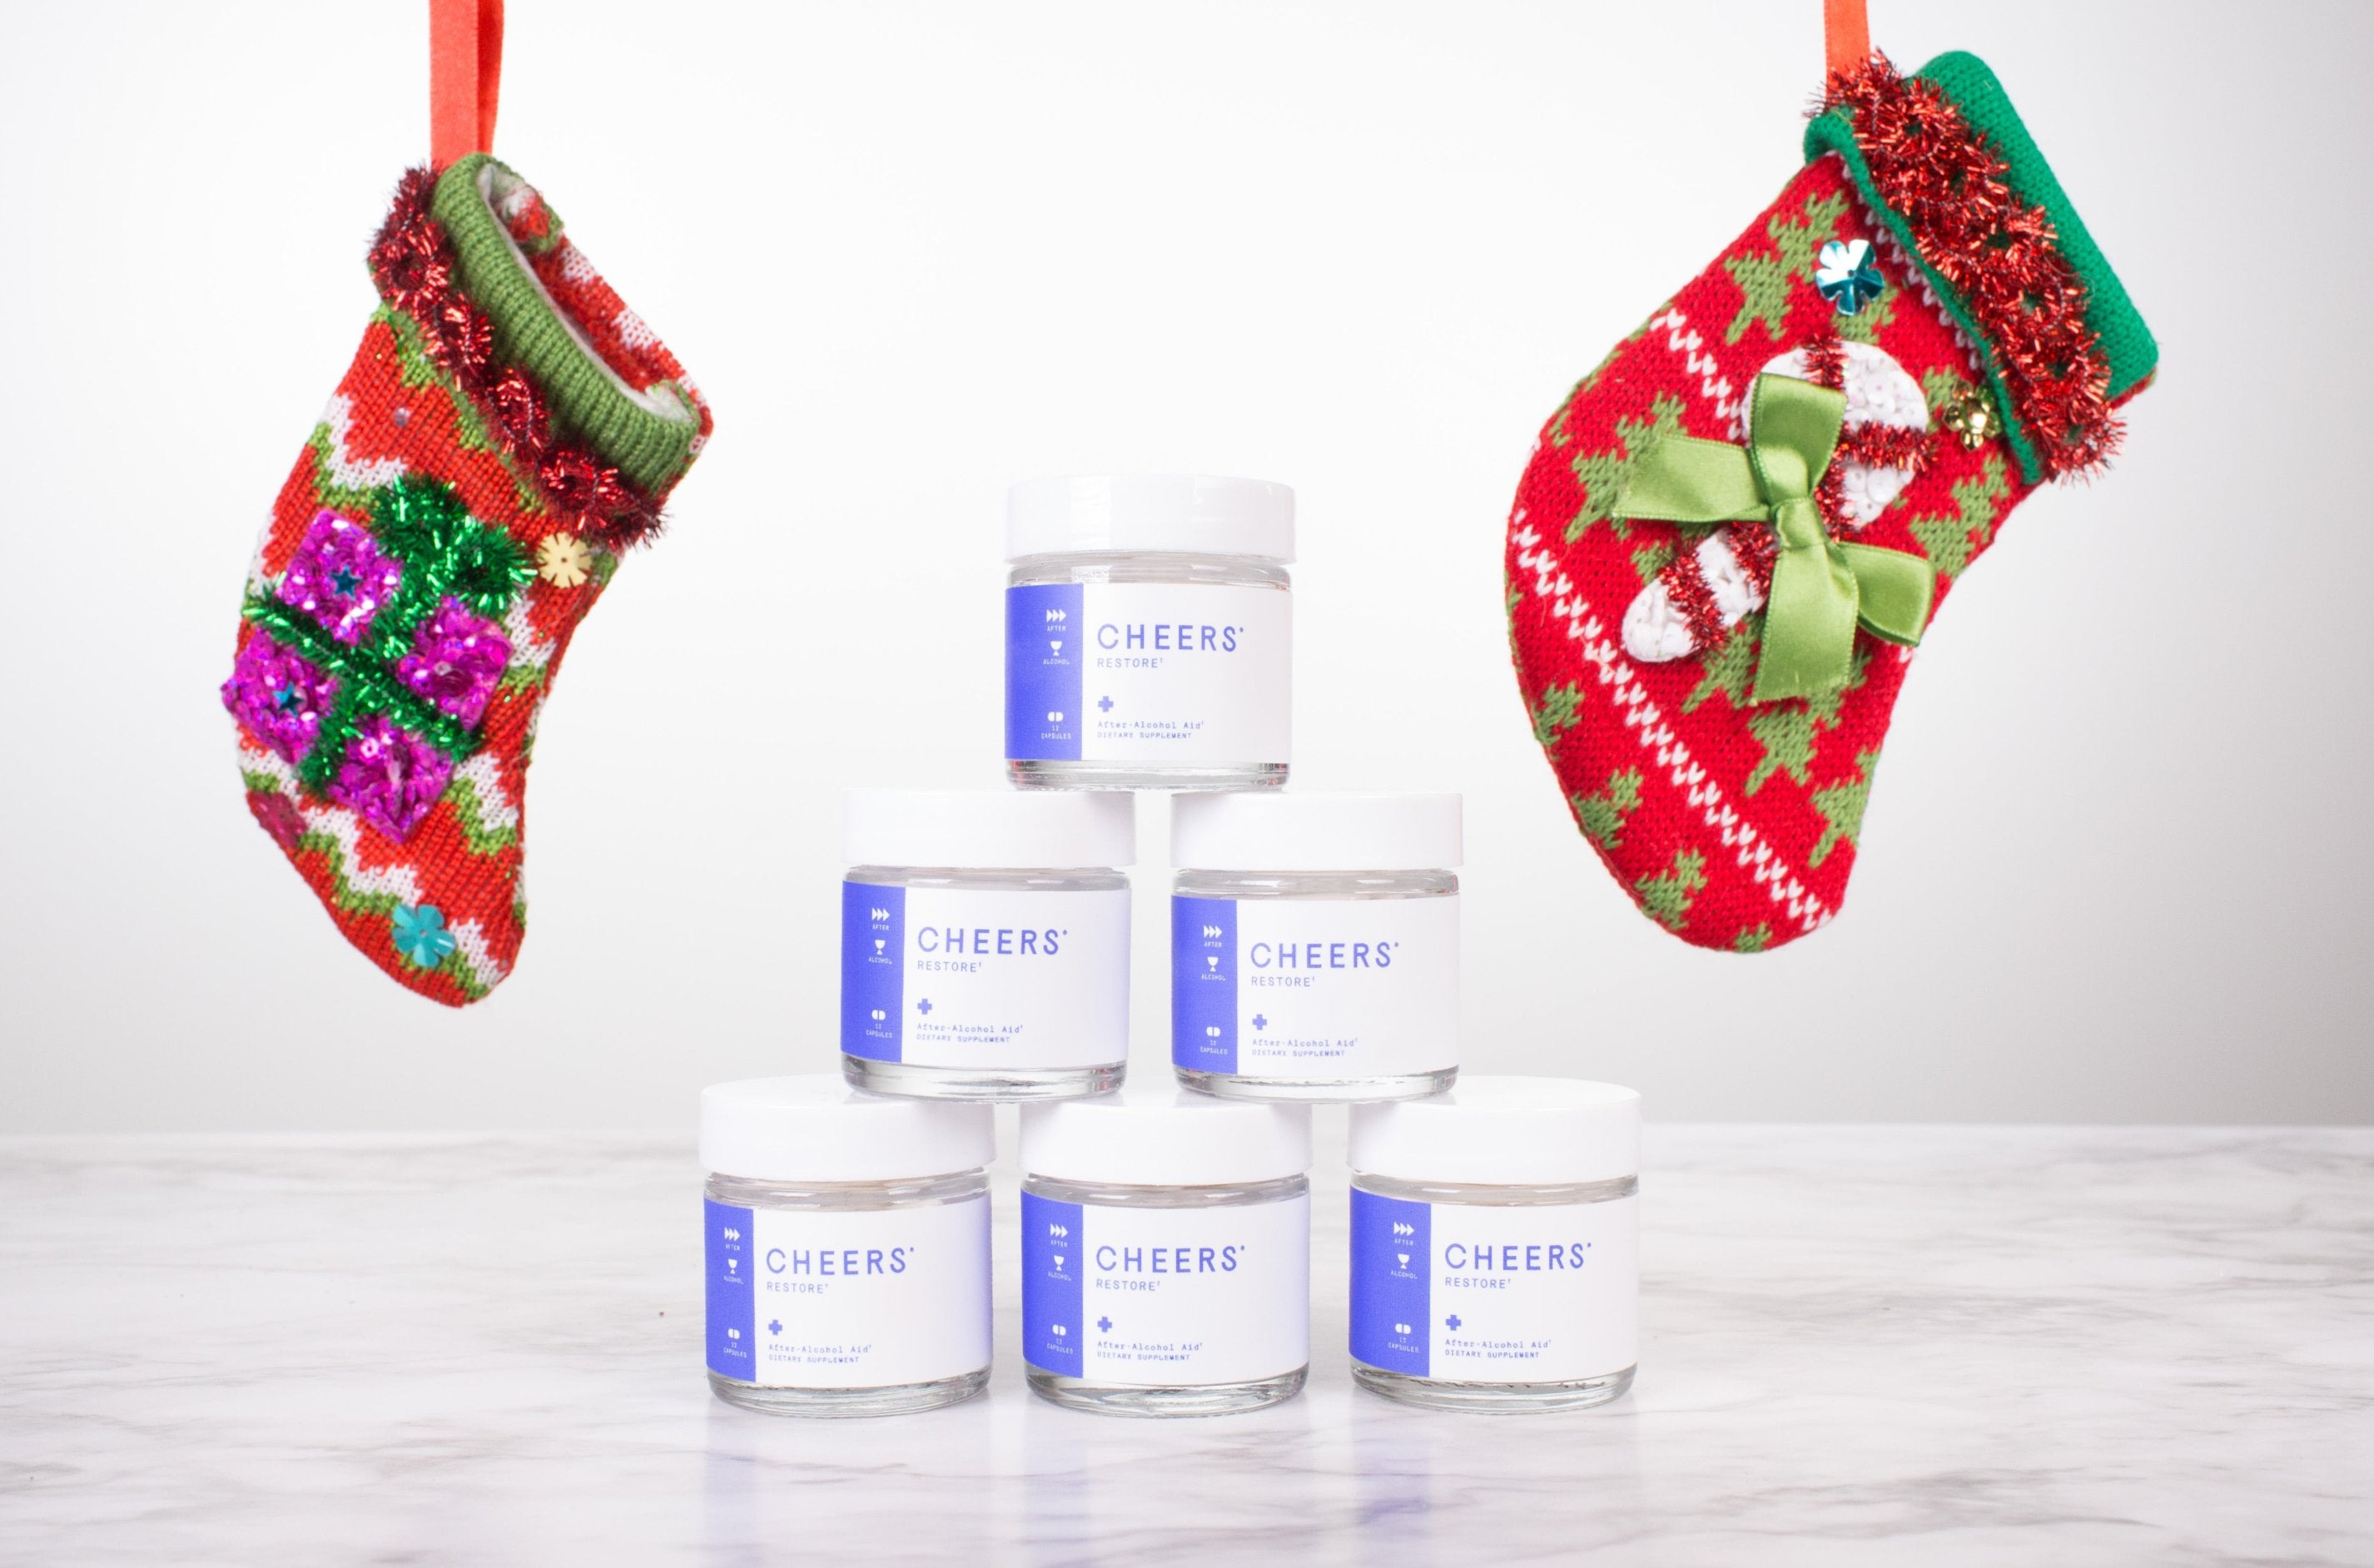 Cheers Restore (4 Dose) Holiday Stocking Stuffer